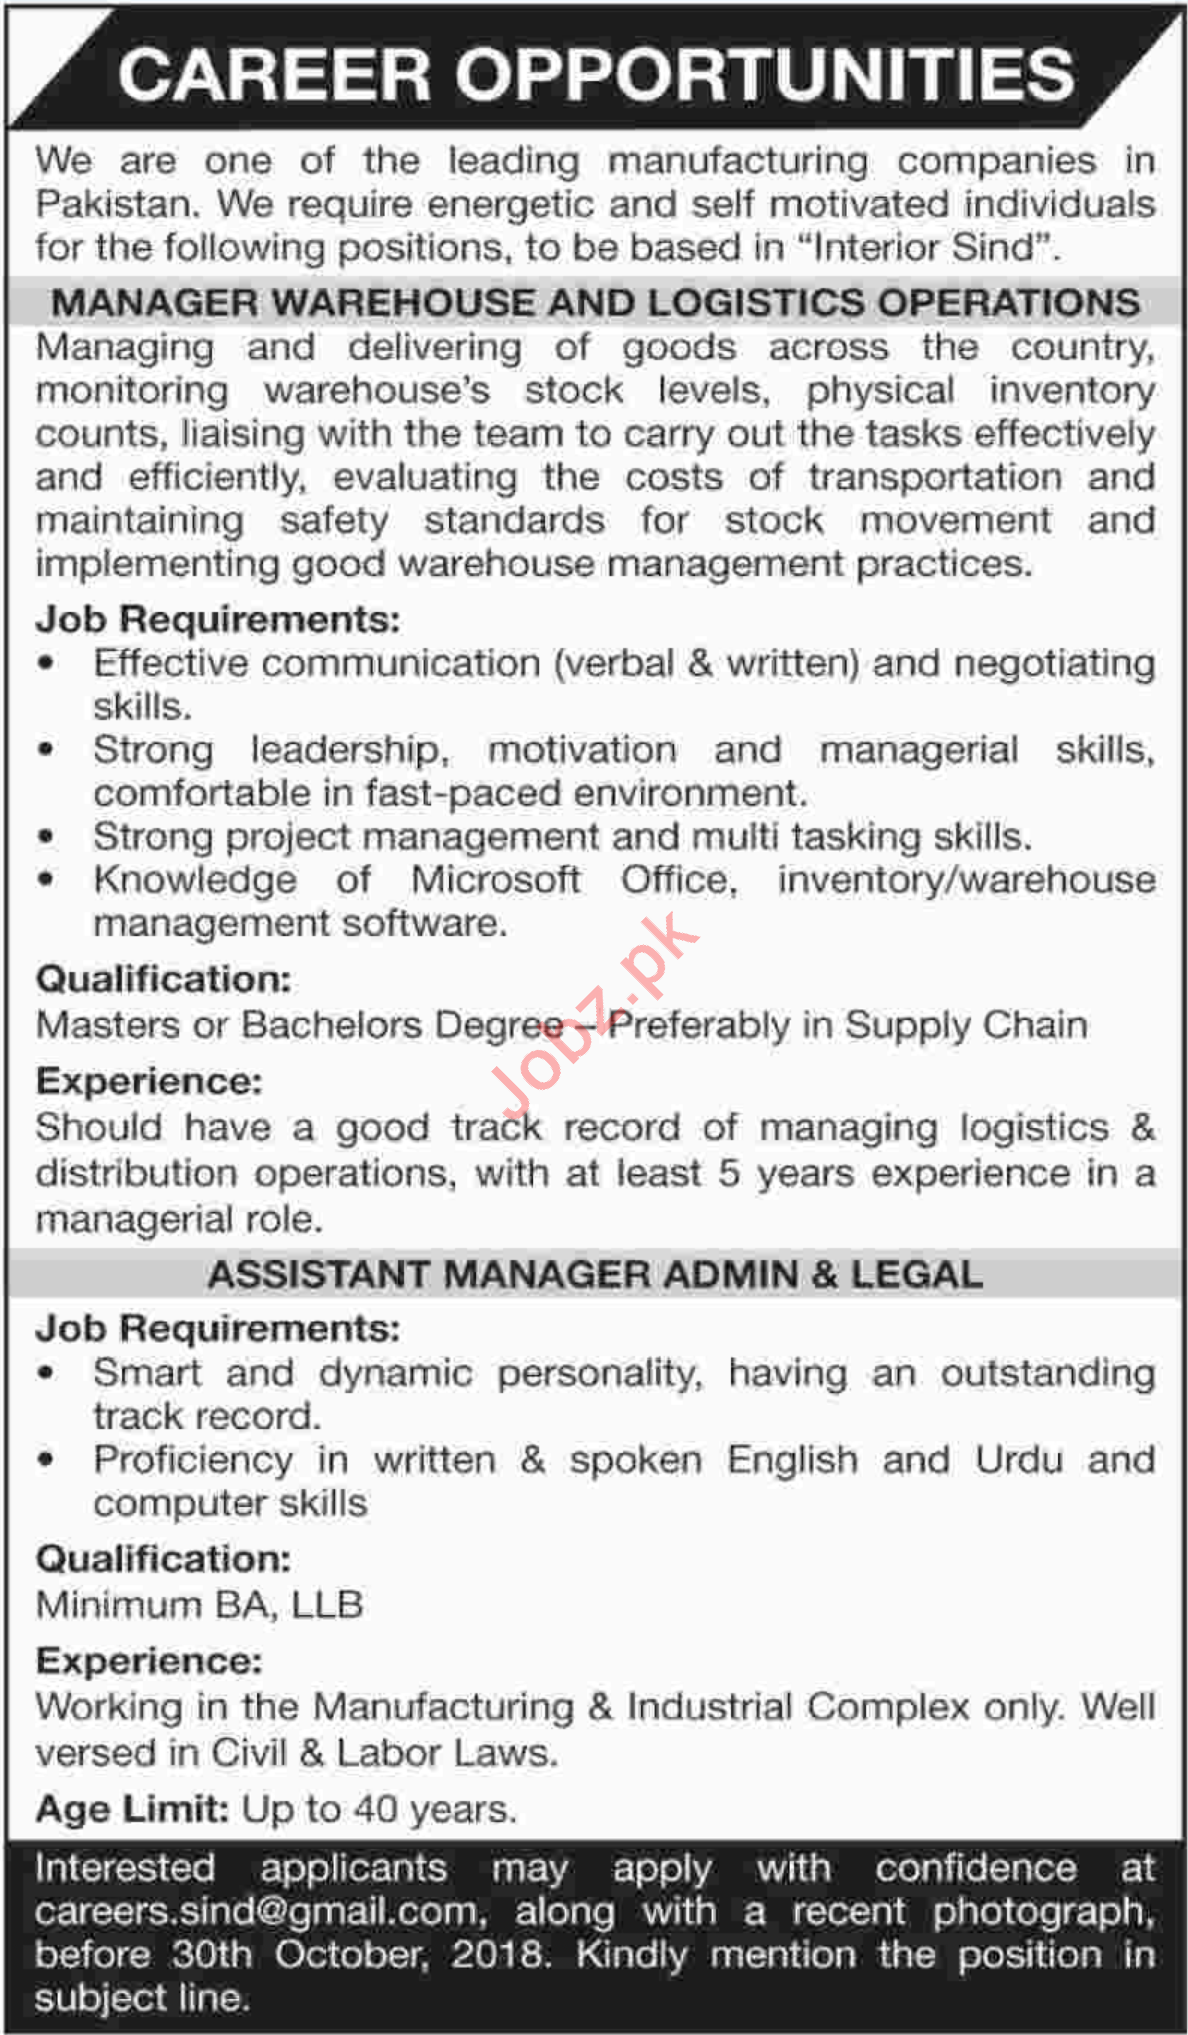 Manager Houseware and Logistic Operations Jobs